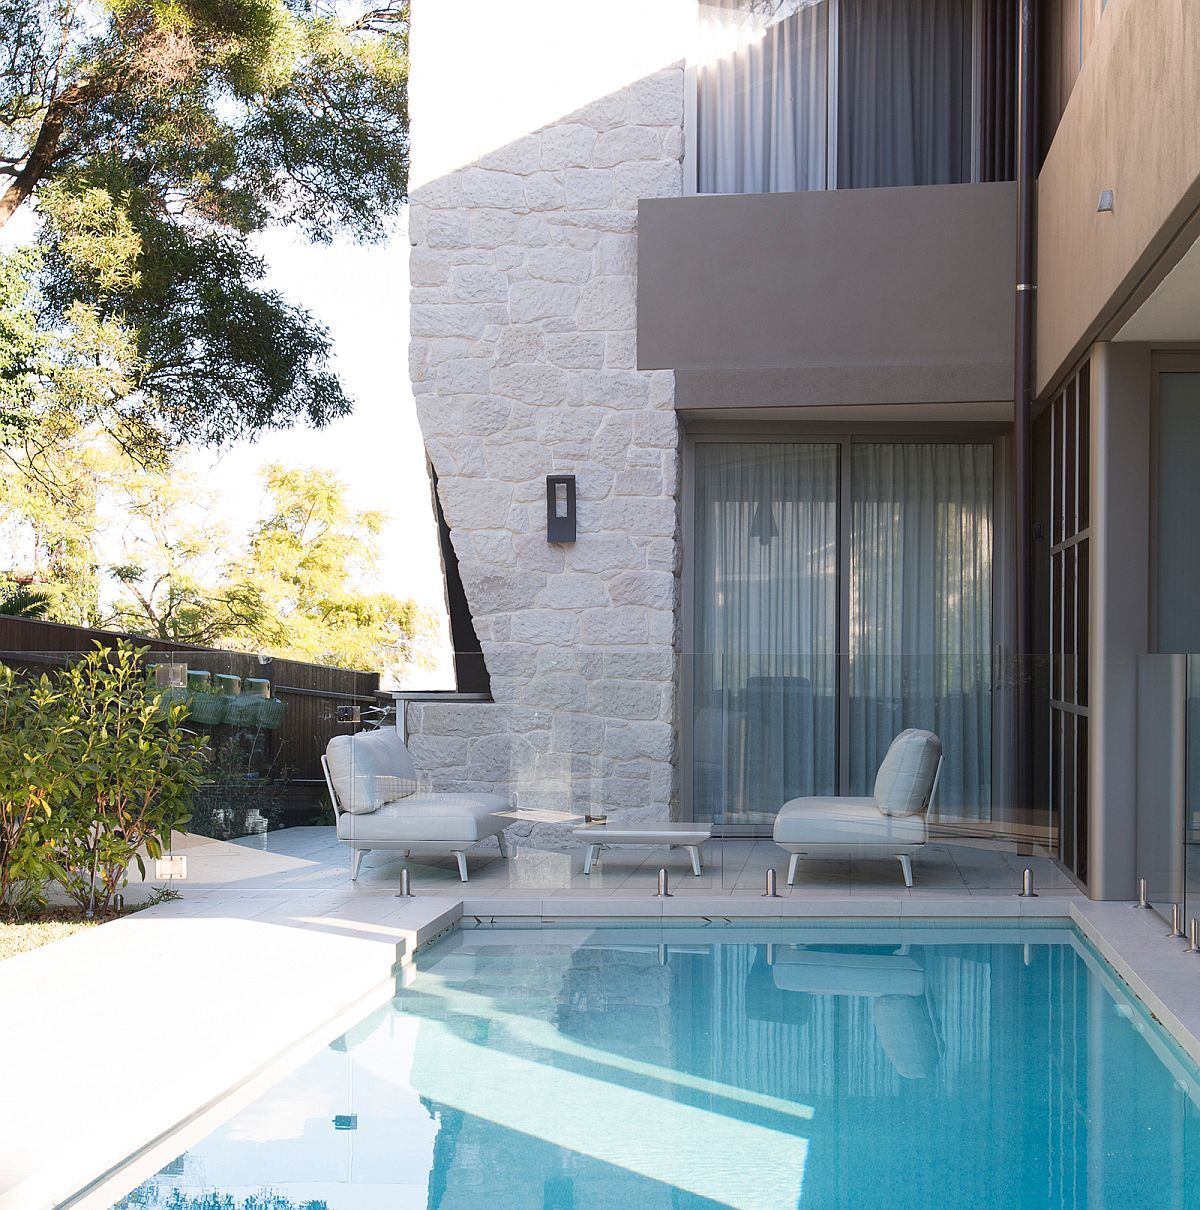 Pool are aaround the house along with sheltered sitting spaces